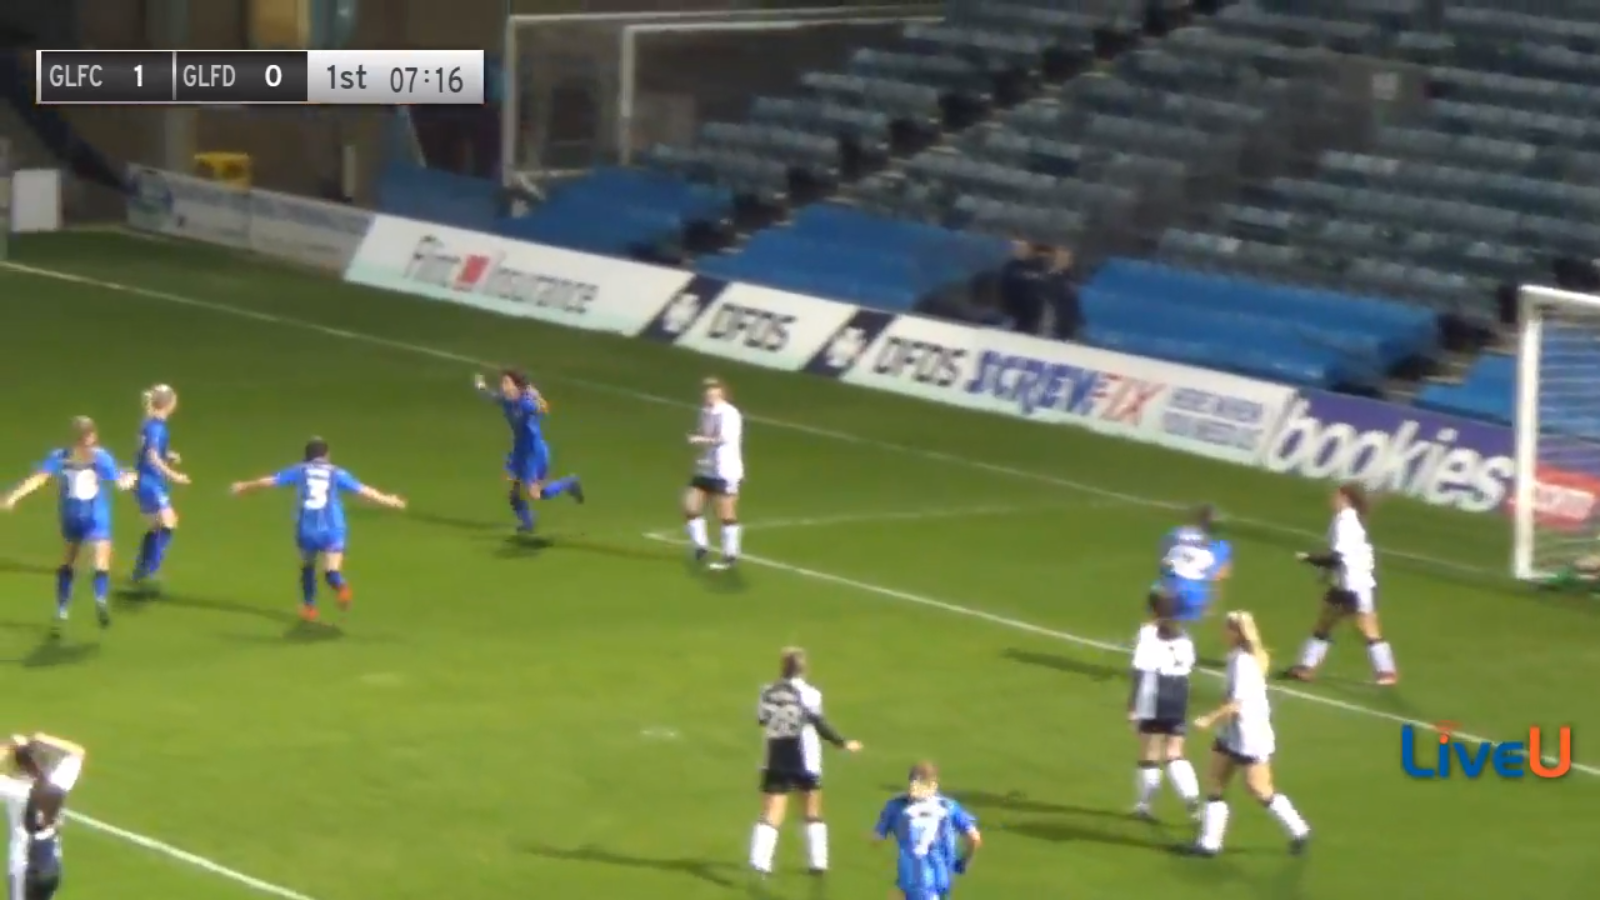 The moment Gillingham took the lead in the Kent FA Women's Cup Final